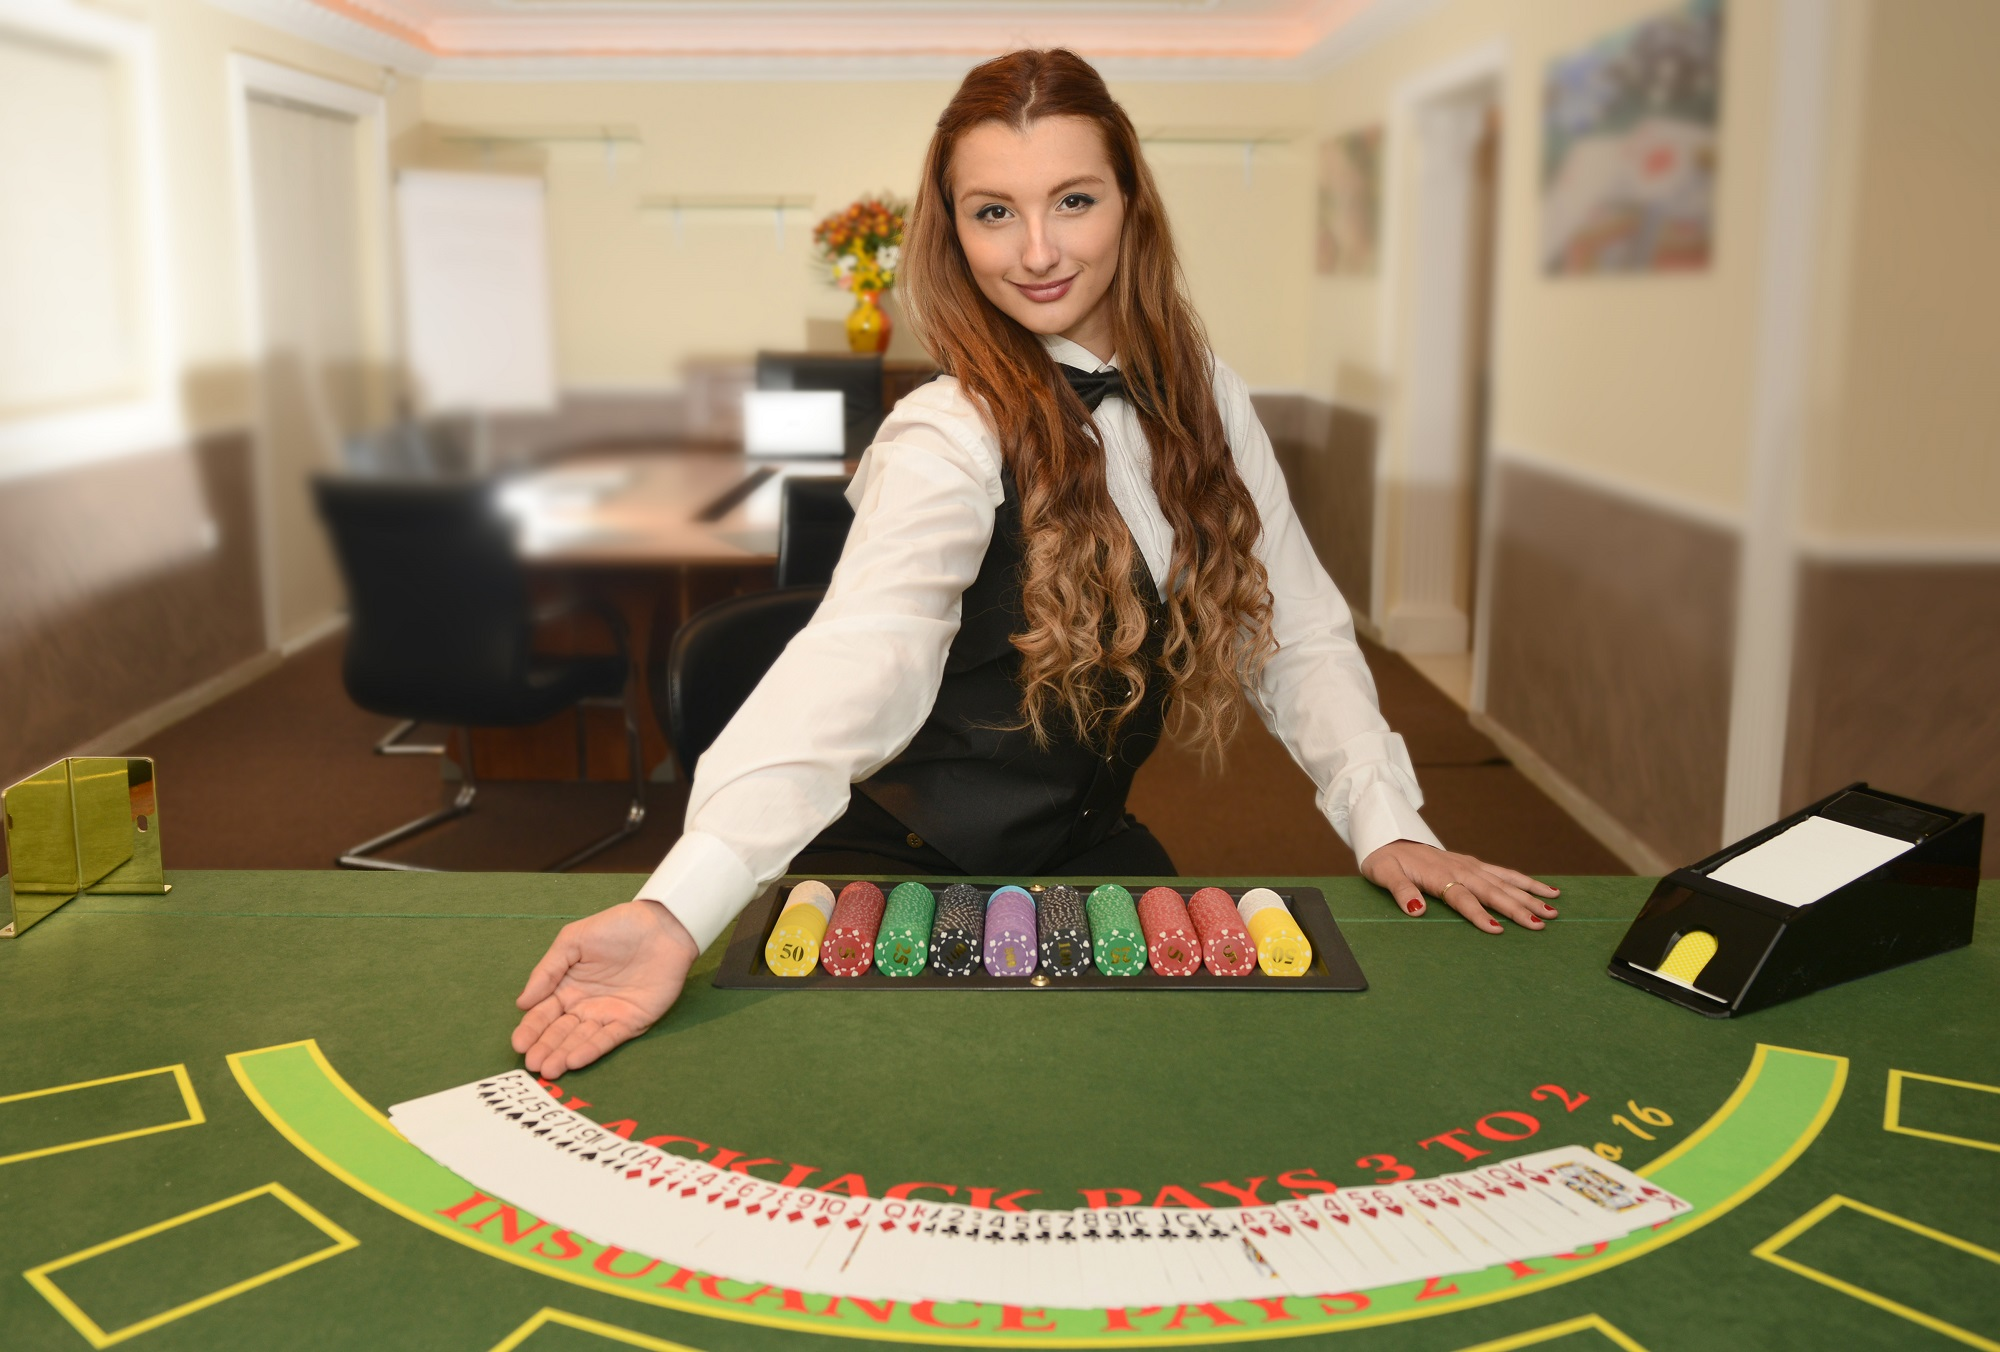 croupier training